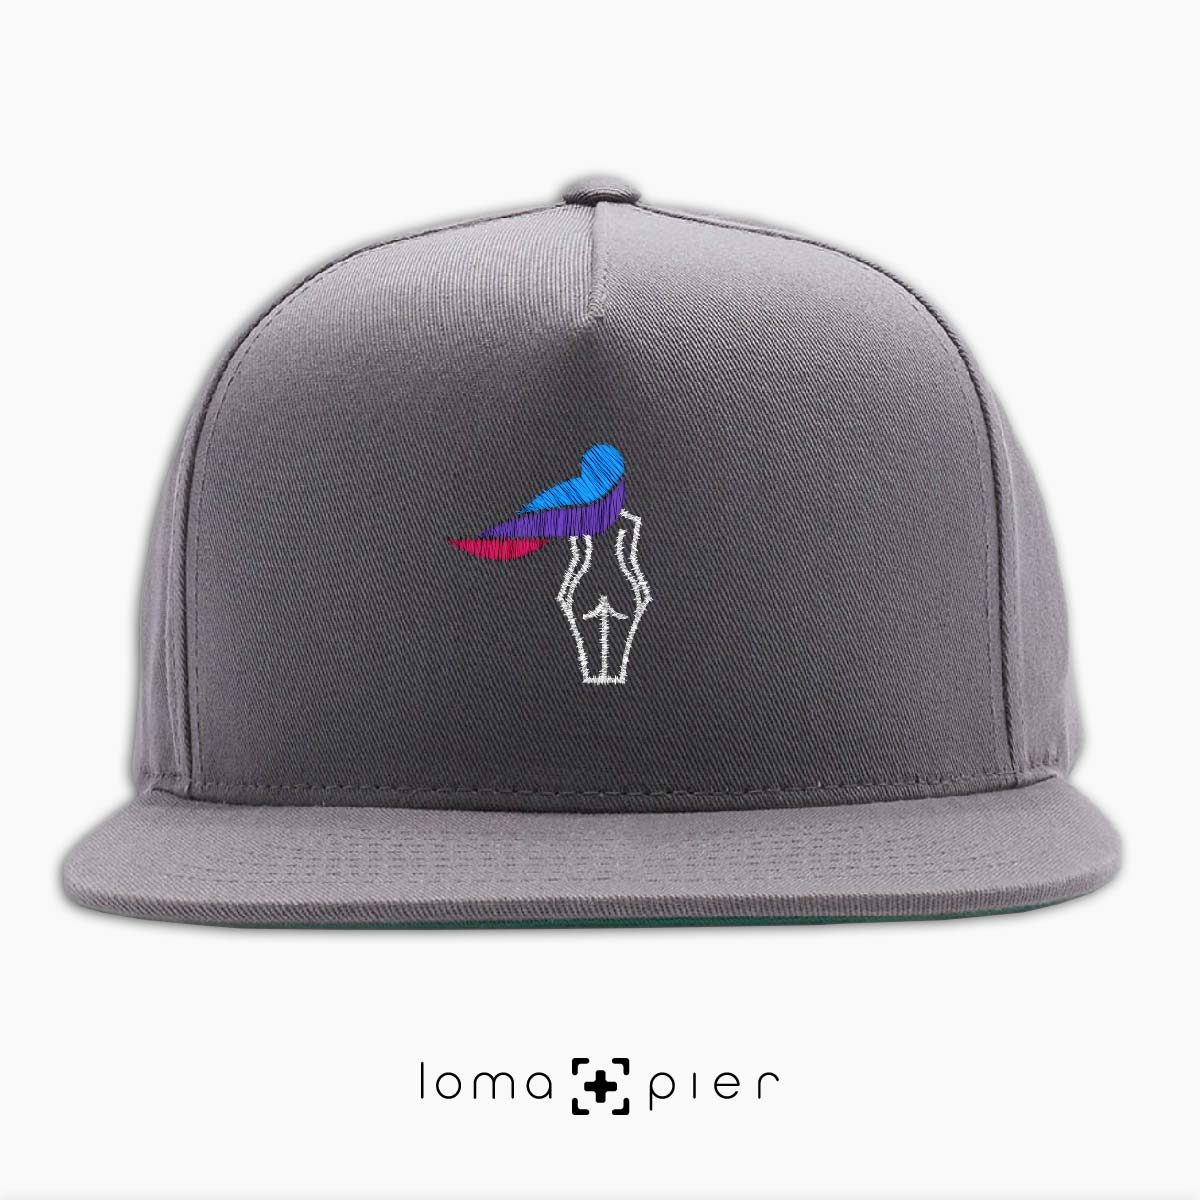 WAVY BEACH icon embroidered on a grey classic snapback hat with multicolor thread by loma+pier hat store